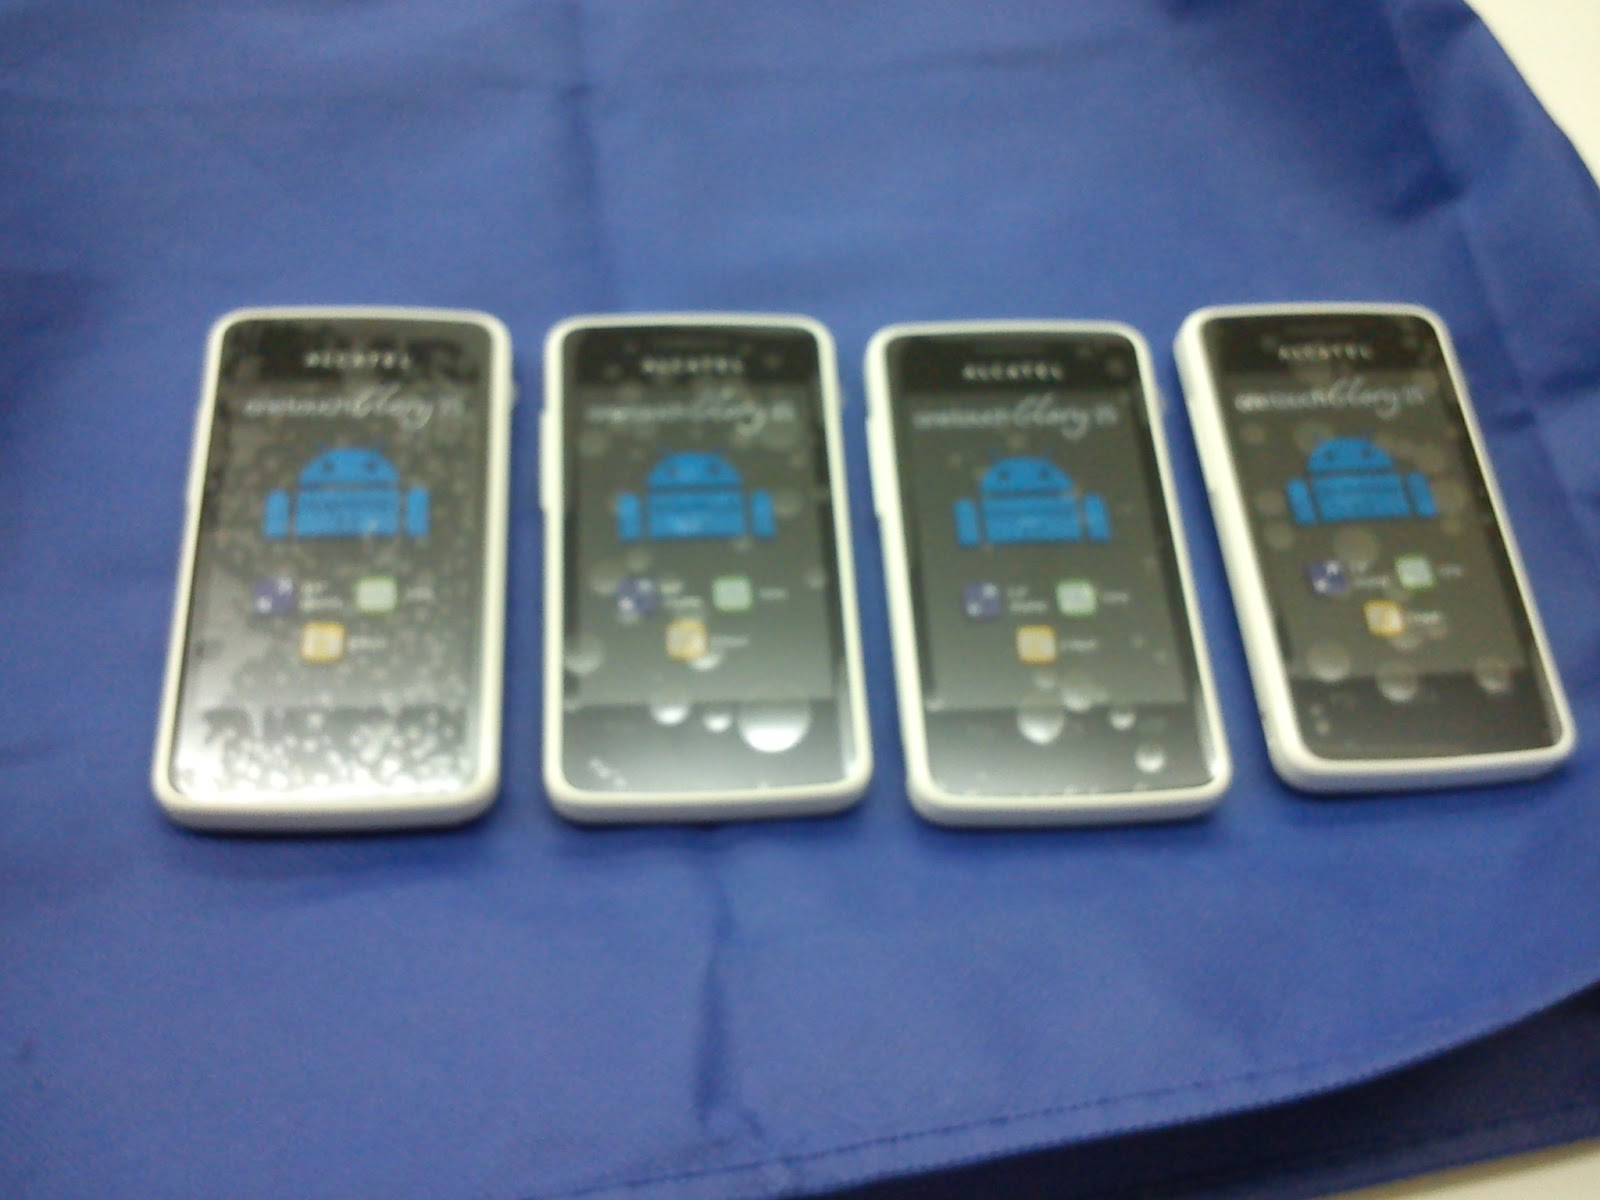 ... for happy rebat smartphone alcatel one touch glory 2s and zte v793